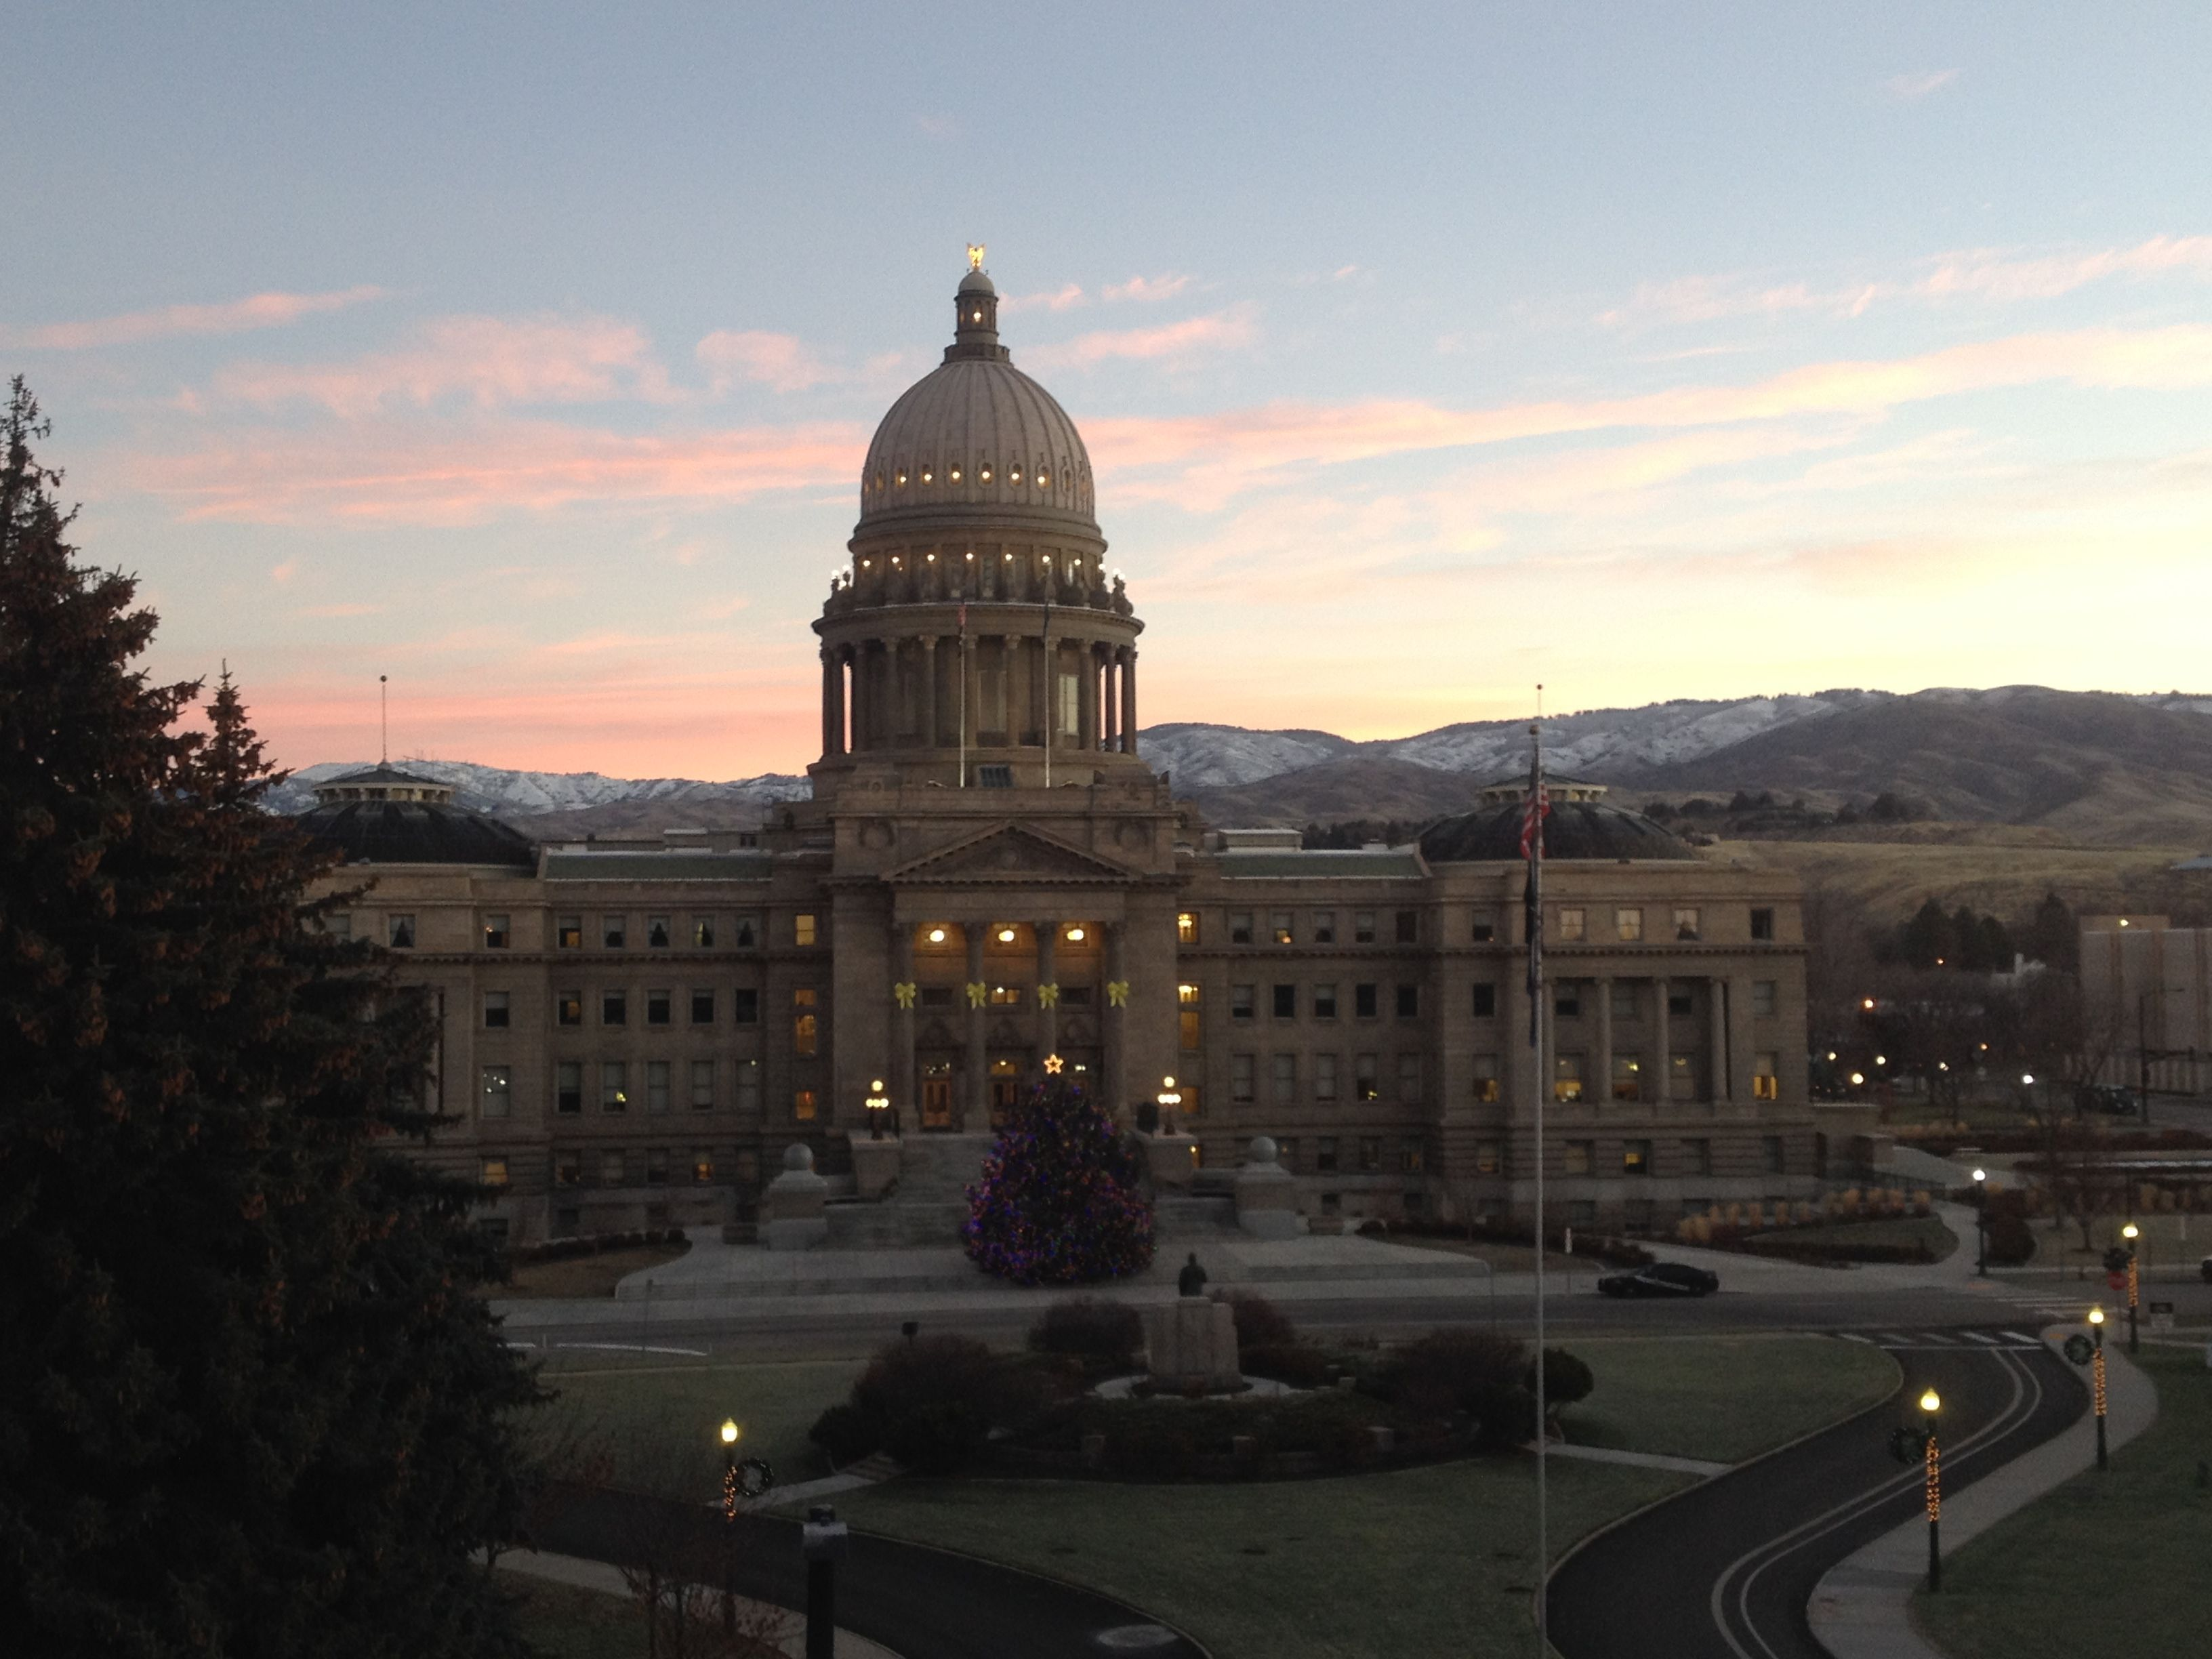 Idaho State Capitol ~ Photo credit: Mitch Knothe